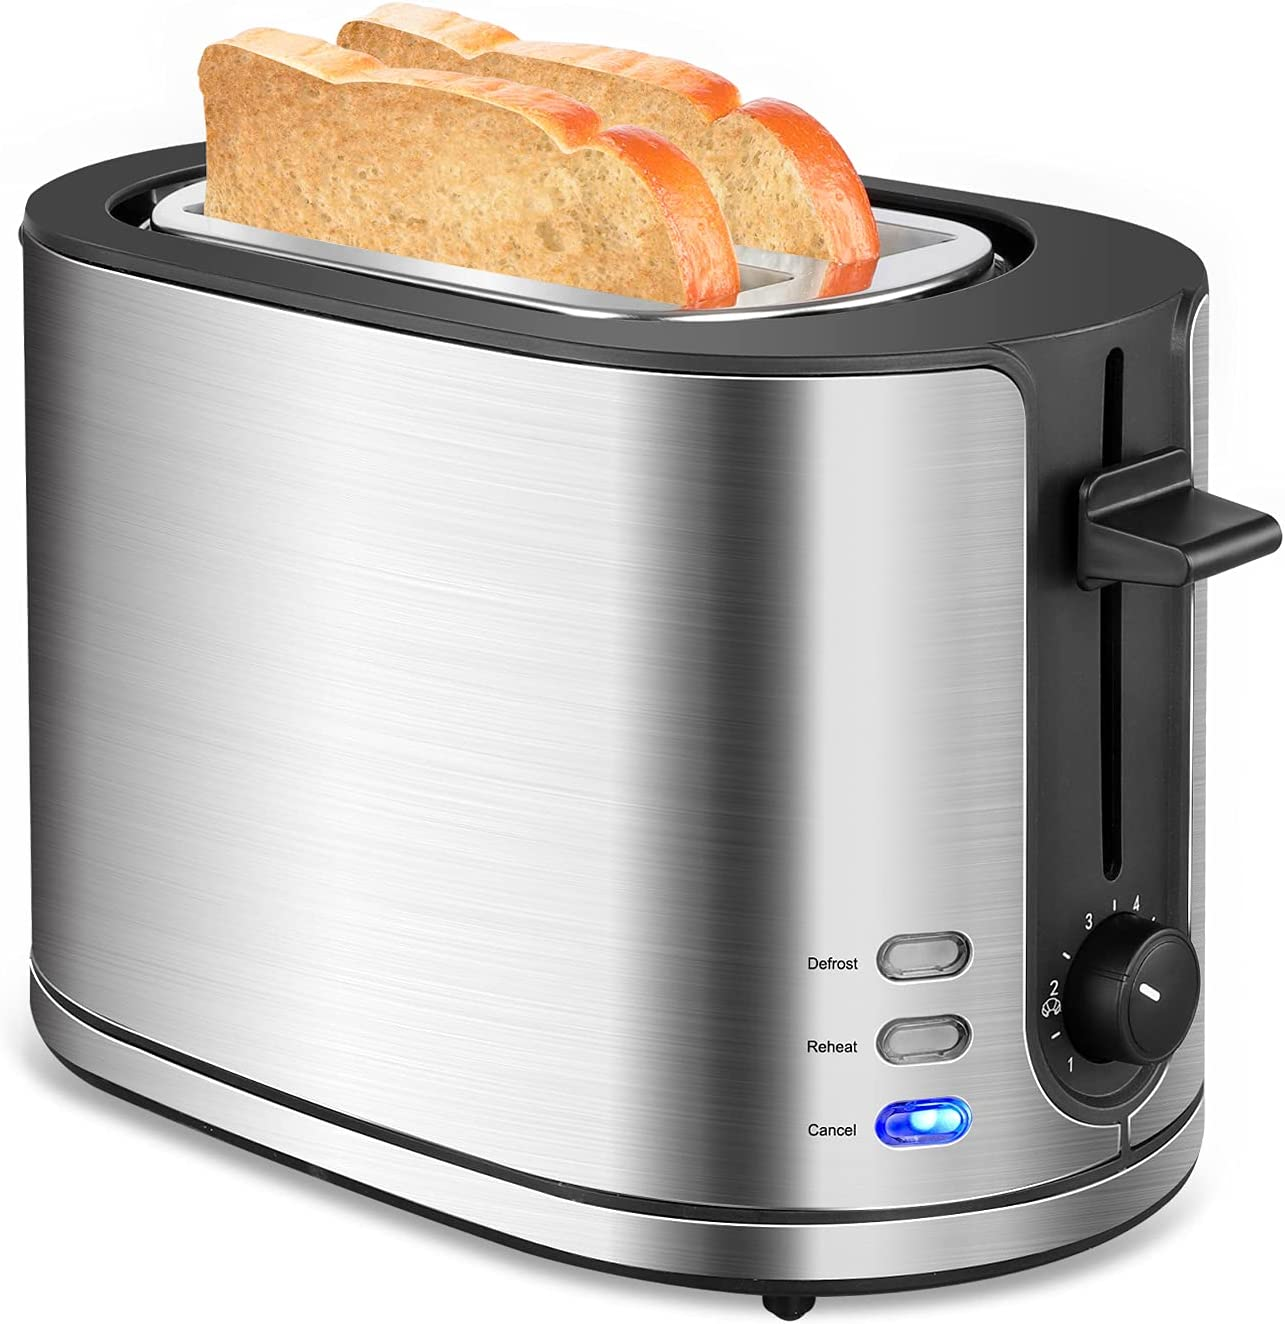 Toaster 2 Slice Extra Wide Slot, FRESKO Stainless Steel Bread Toasters with Warming Rack, Small Toaster with 6 Bread Shade Settings, Reheat/Defrost, Cancel, Removable Crumb Tray for Bread, 850W